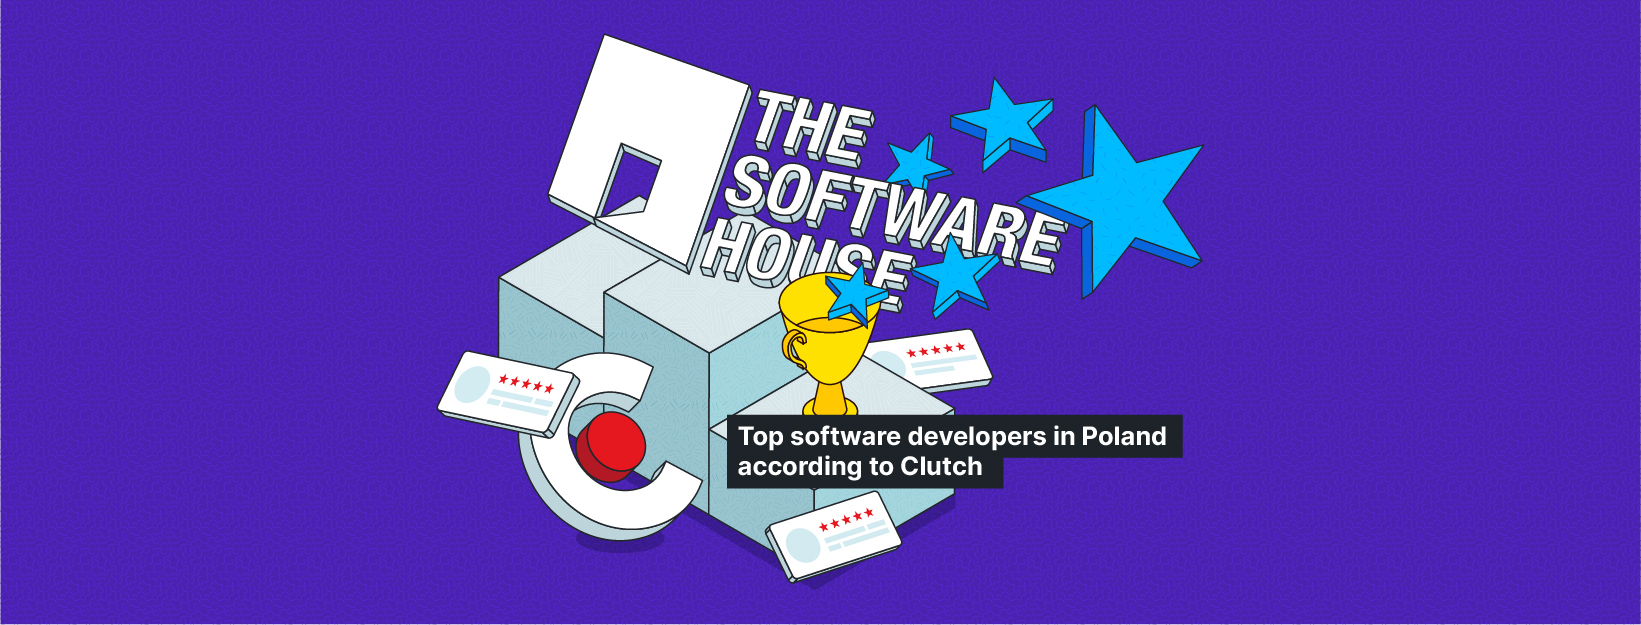 The Software House – top software developers in Poland according to Clutch